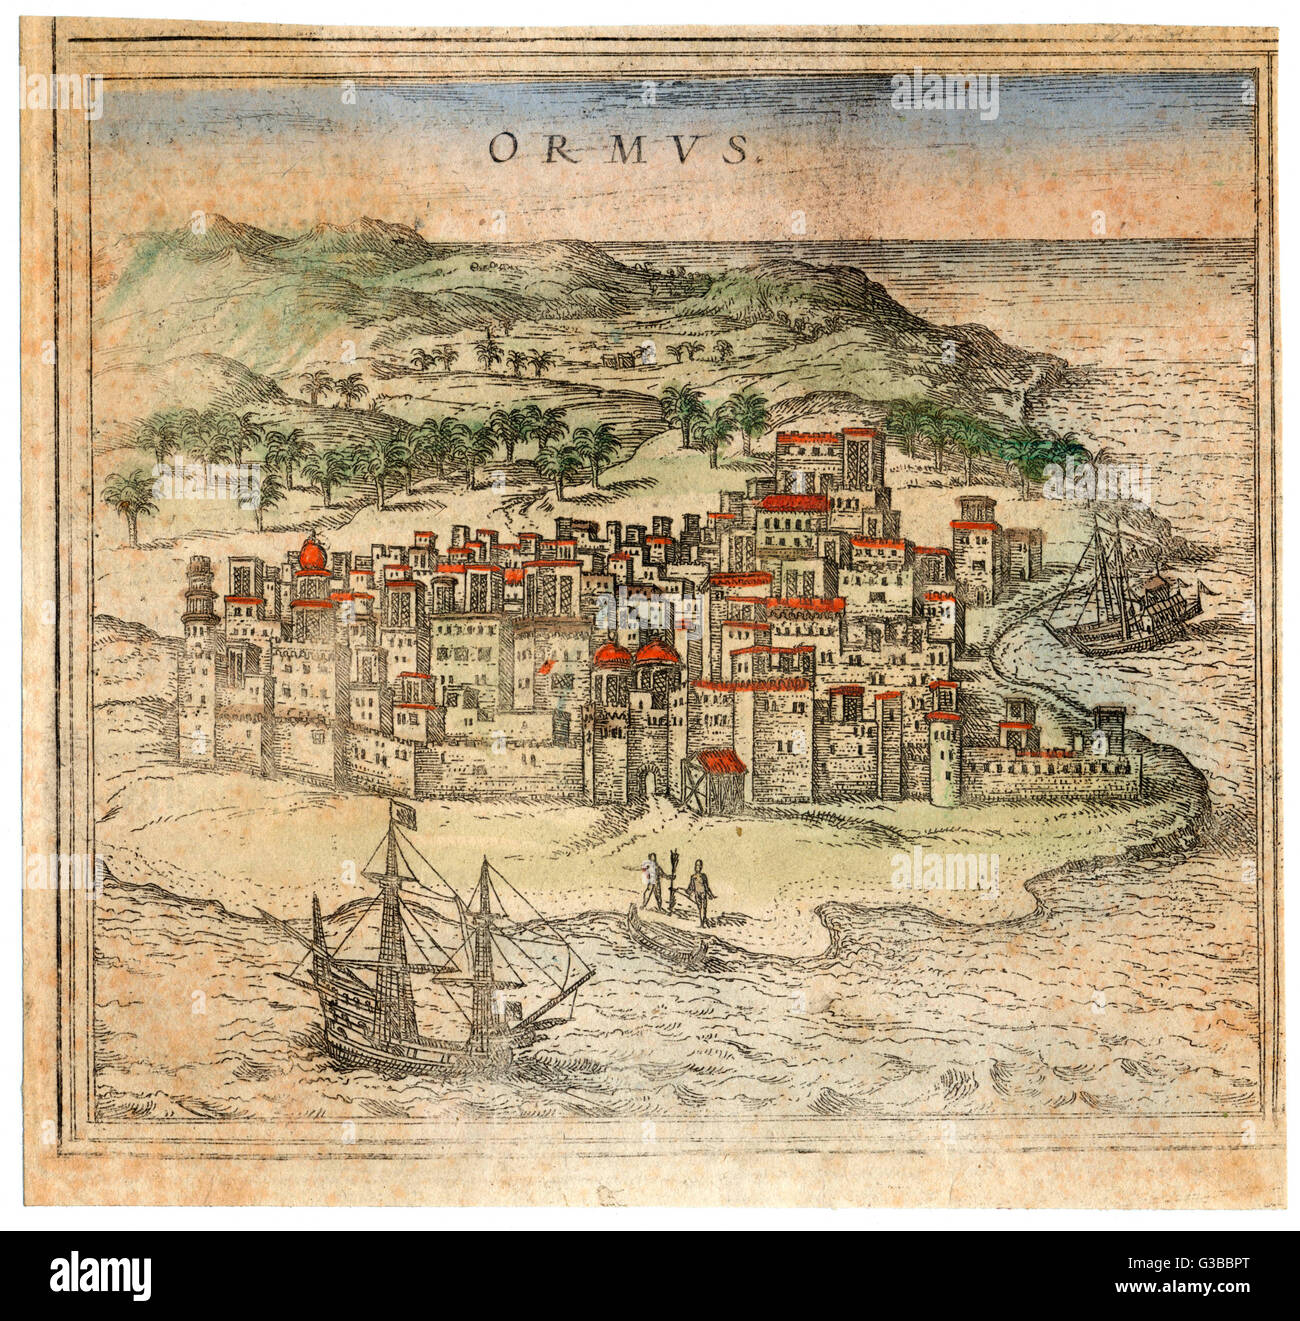 From 1514 the Portuguese  controlled this trading  centre, constructing a citadel which was taken in  1622 by Persians - Stock Image